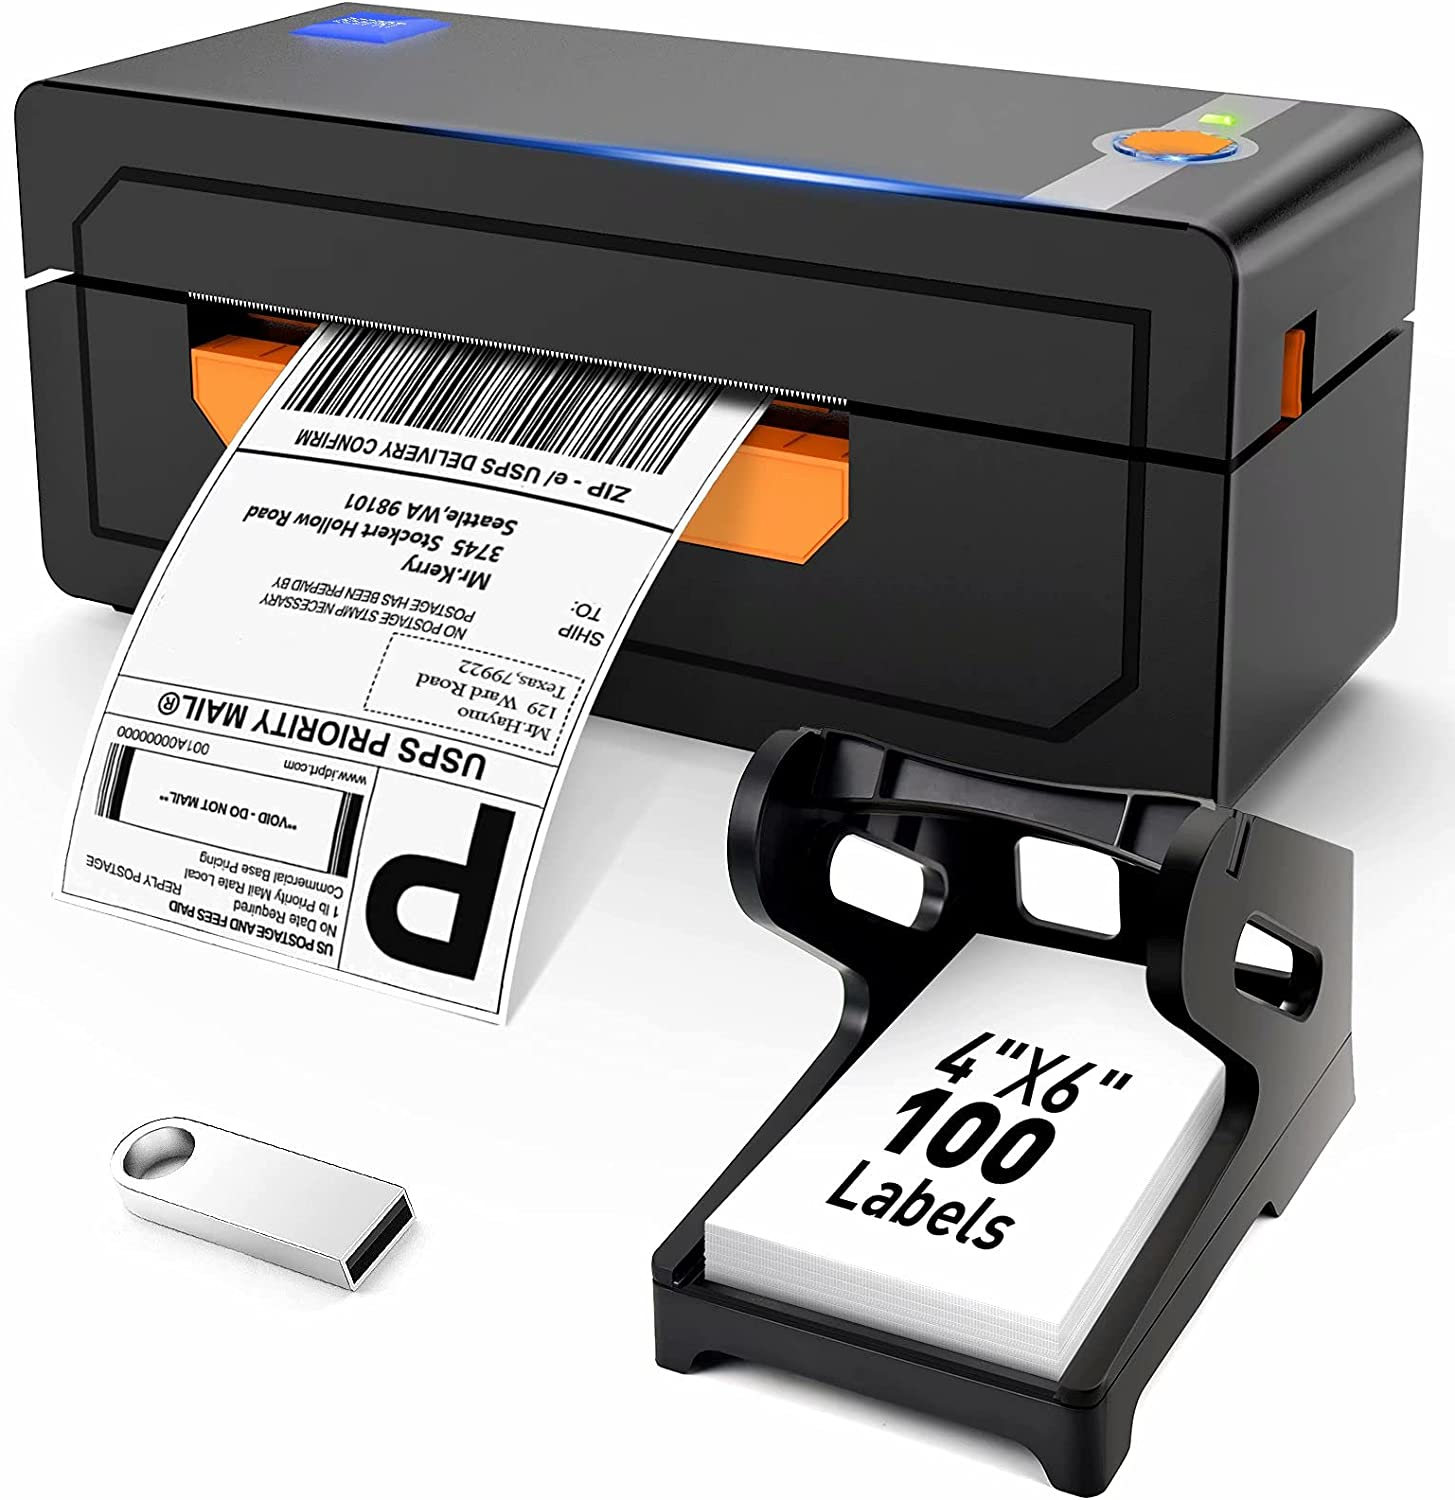 Thermal Label Printer Safety and trust 4x6 Support Windo Shipping Ranking TOP14